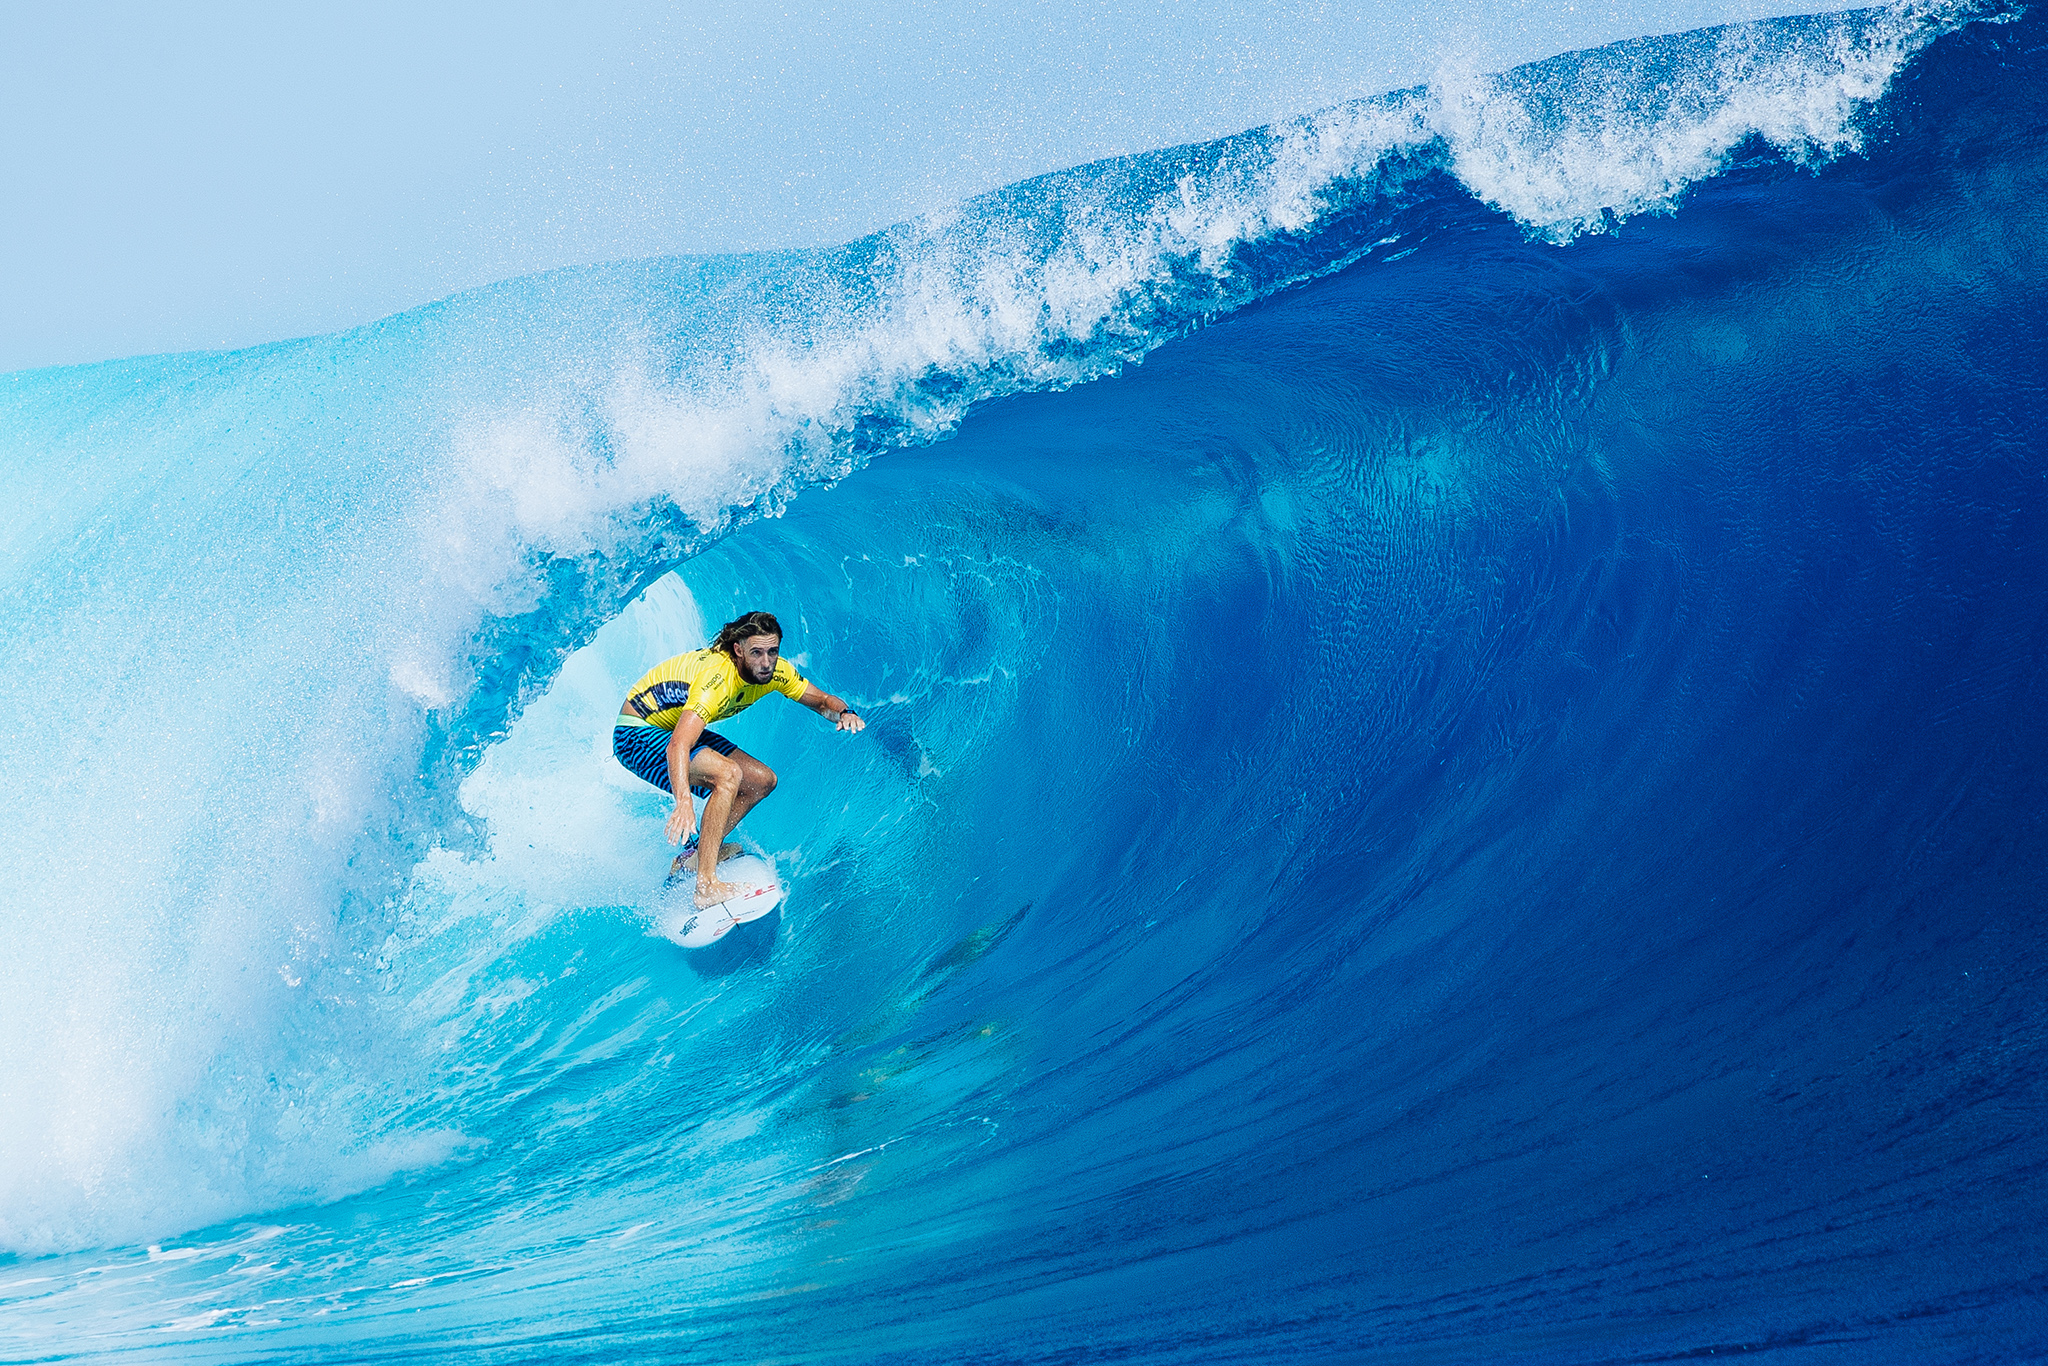 Matt Wilkinson of Australia (pictured) placing runner up at the Fiji Pro at Cloudbreak, Tavarua on Friday June 17, 2016. PHOTO: © WSL/ Sloane @edsloanephoto This image is the copyright of  the World Surf League and is provided royalty free for editorial use only, in all media now known or hereafter created. No commercial rights granted. Sale or license of the images is prohibited. This image is a factually accurate rendering of what it depicts and has not been modified or augmented except for standard cropping and toning. ALL RIGHTS RESERVED.